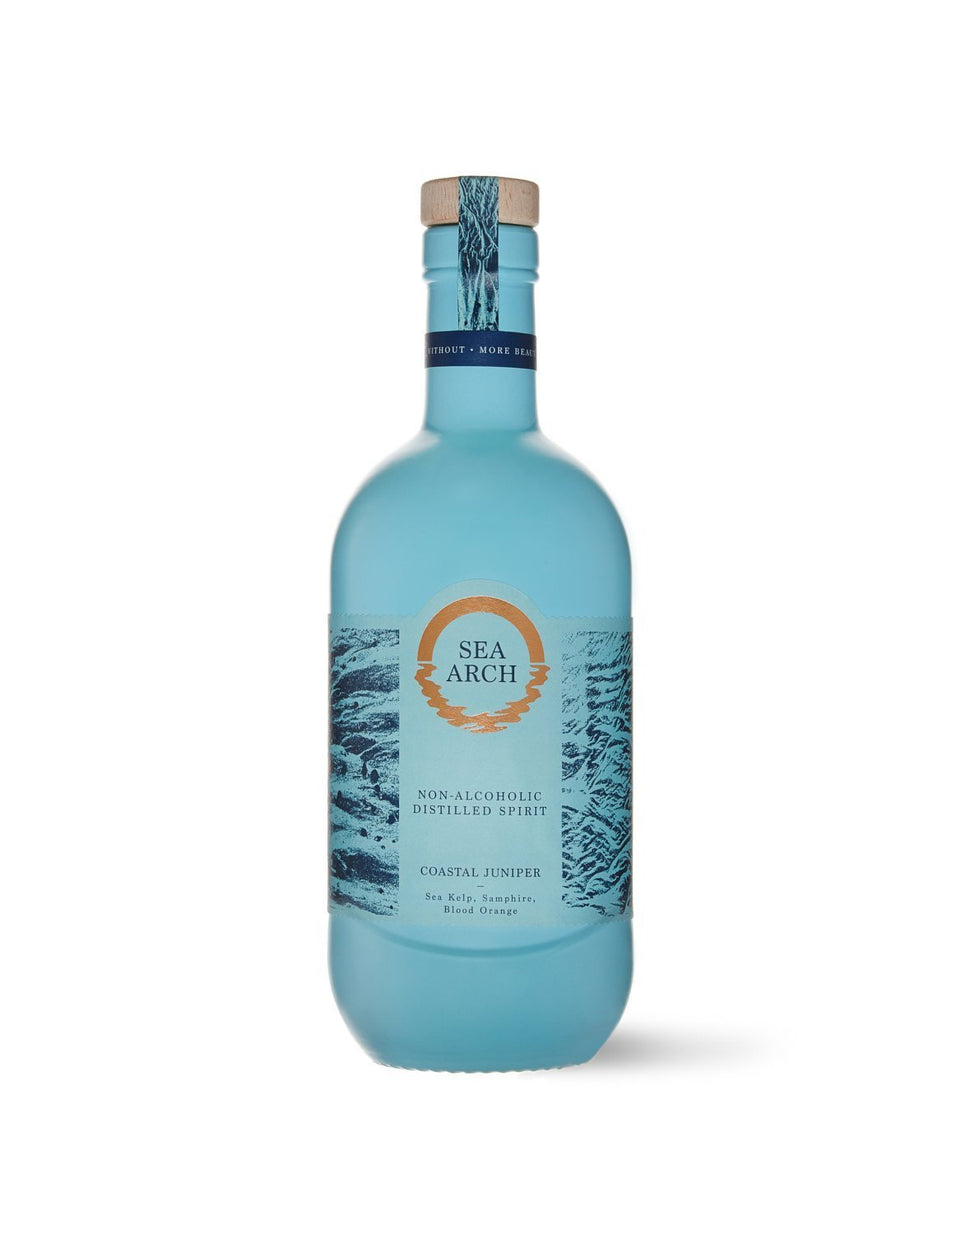 Sea Arch Non-Alcoholic Botanical Spirit 700mL - Craftzero